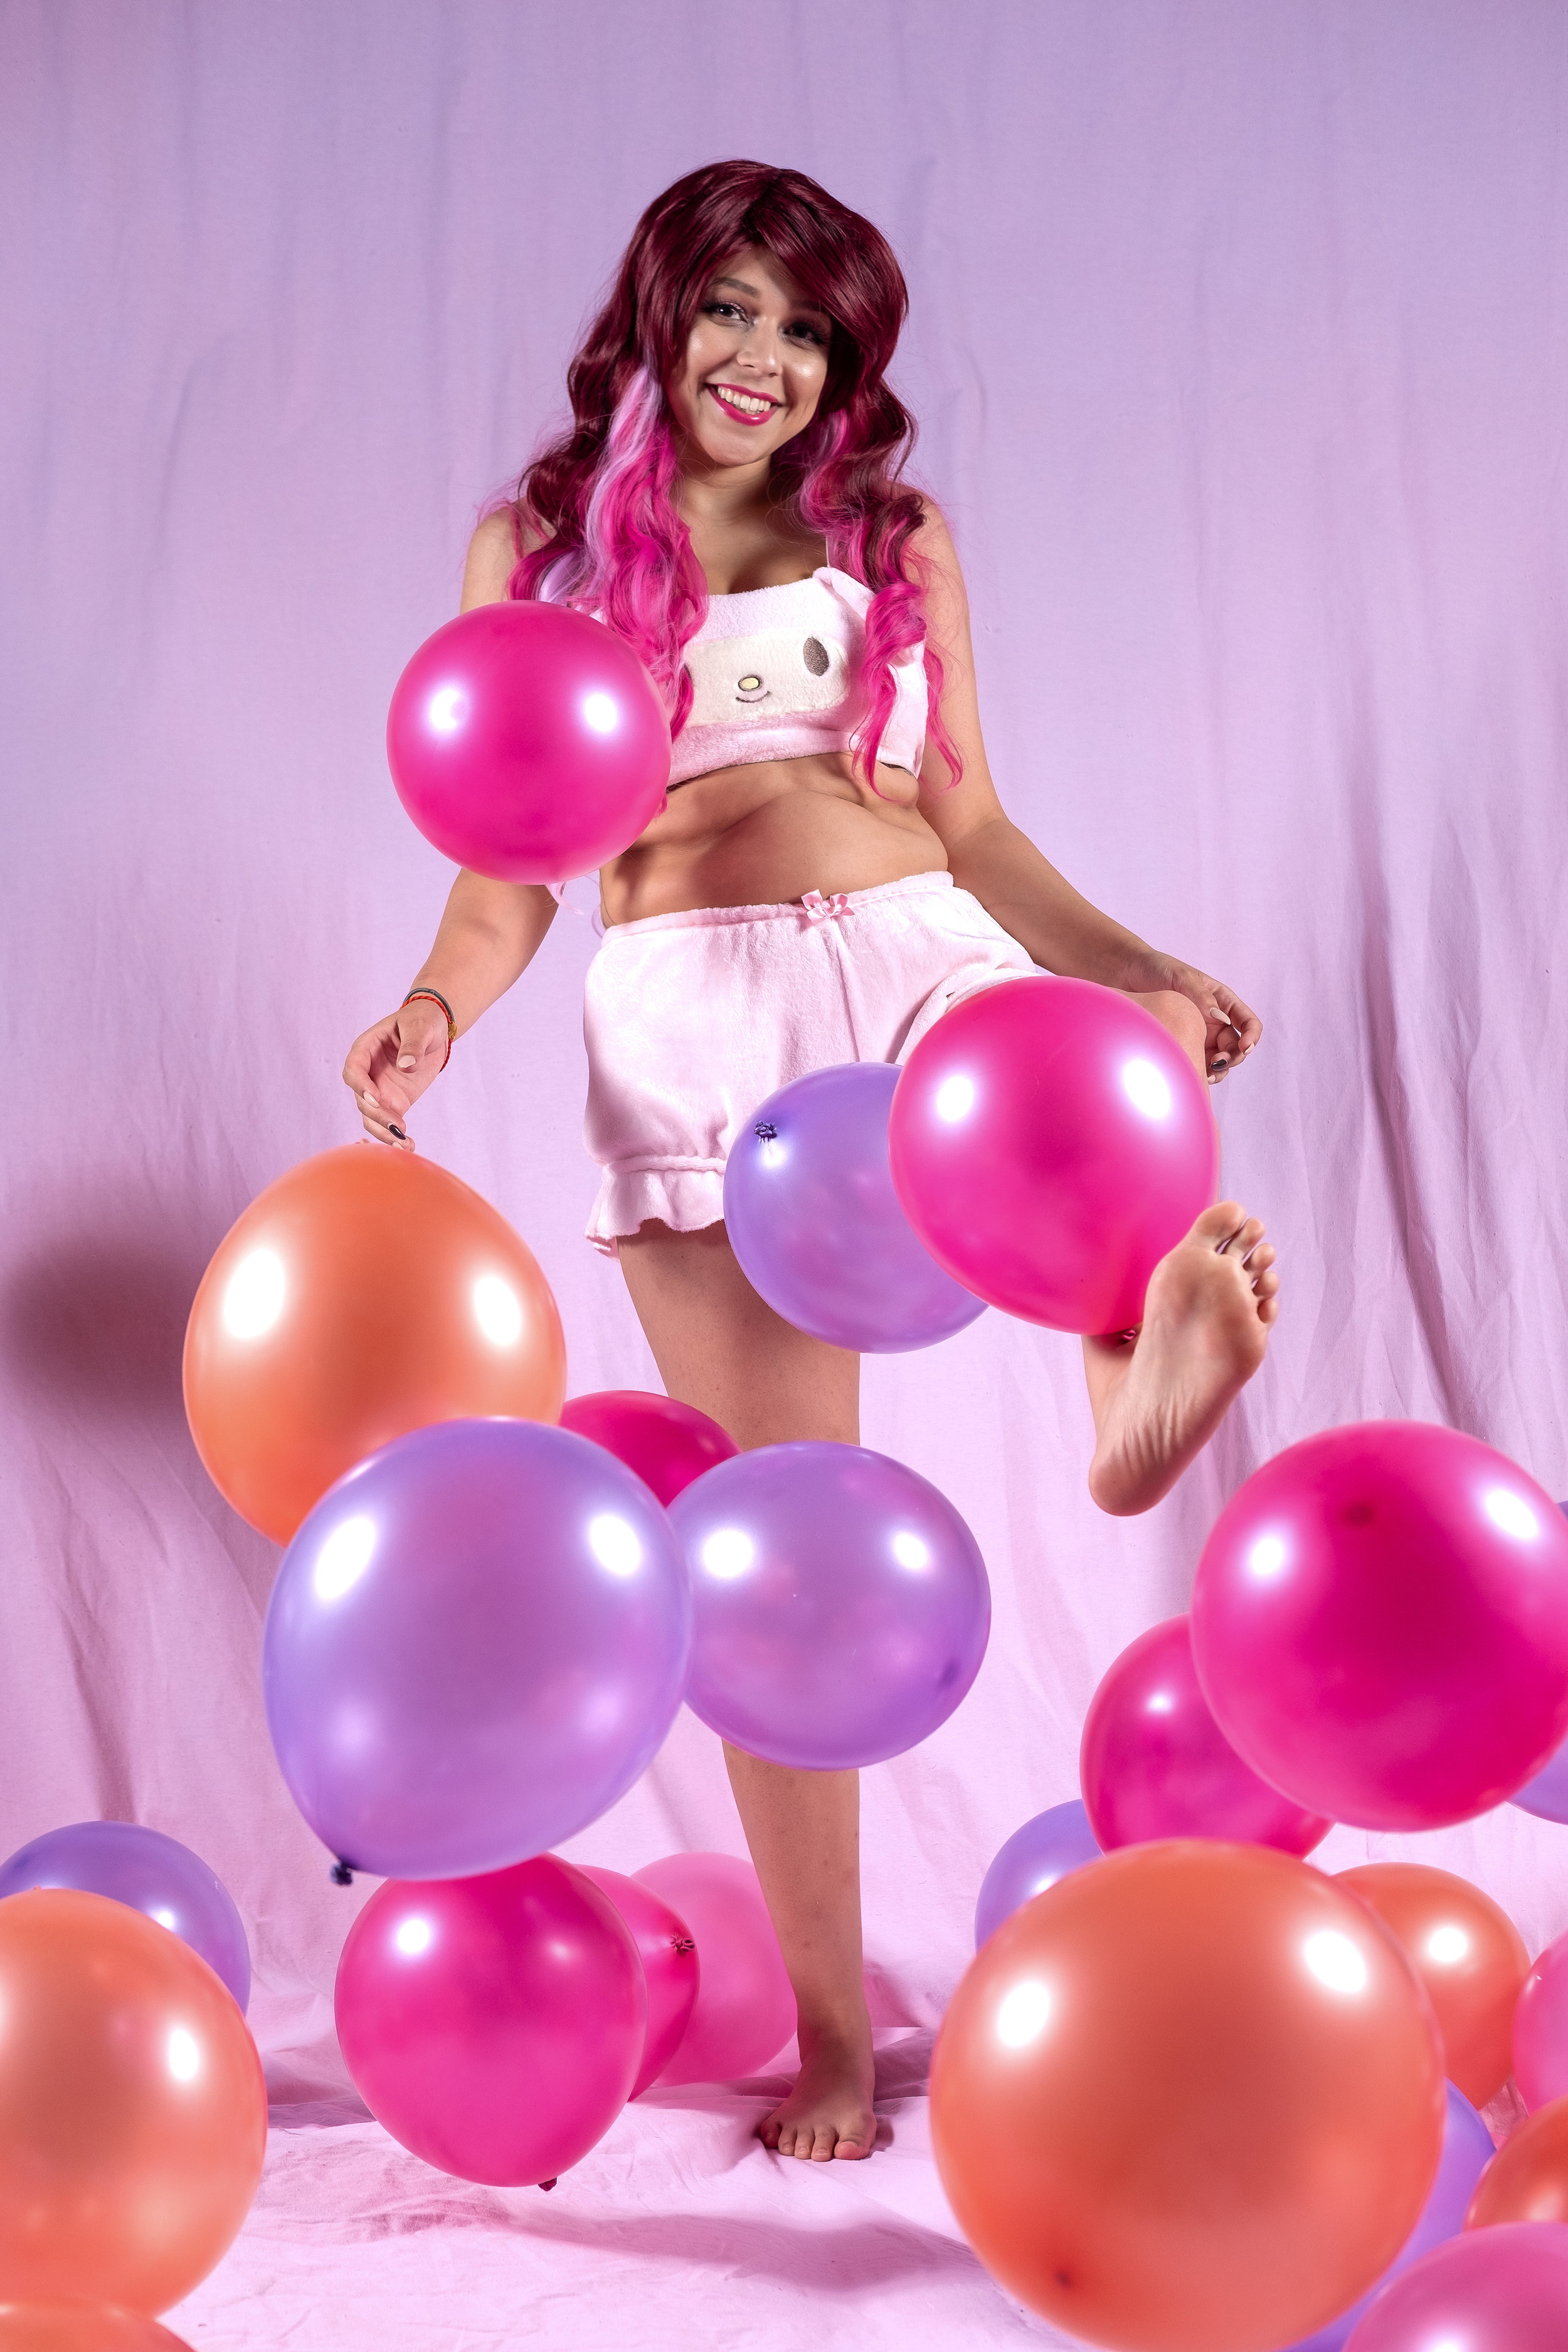 Mermaid Child kicking balloons while wearing the My Melody lingerie set from Sanrio